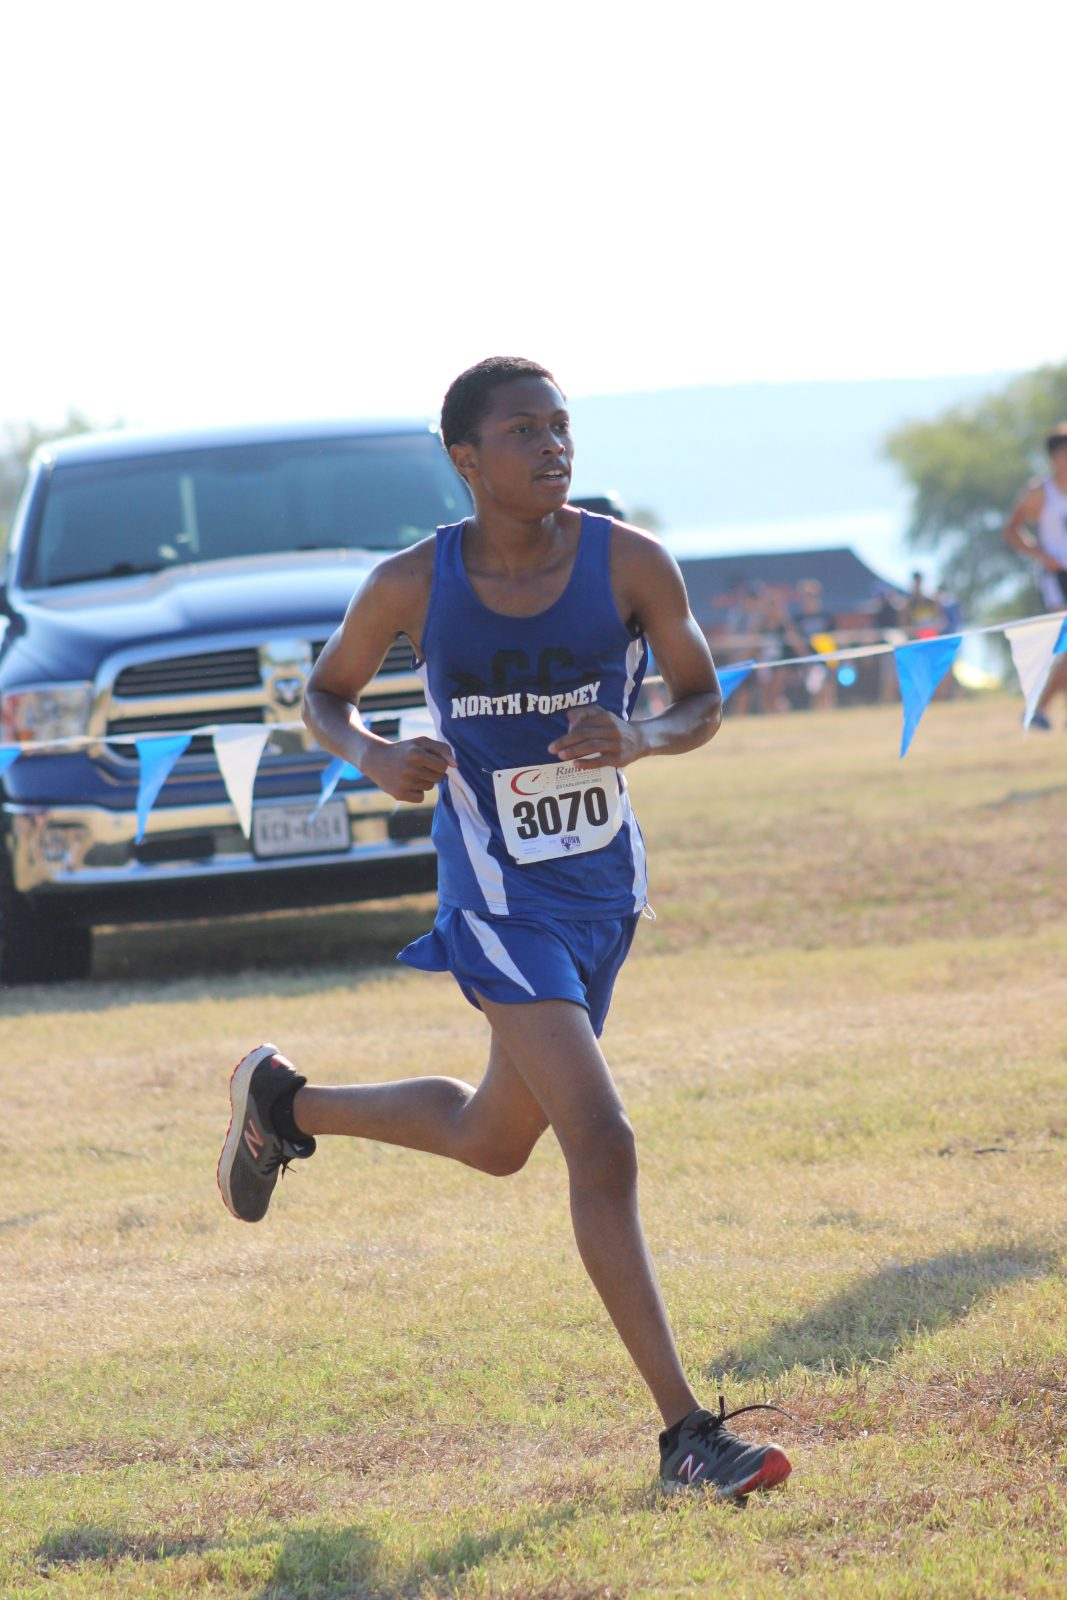 Falcon Cross Country Race's the Lake, Hood Medals by Taking 16th